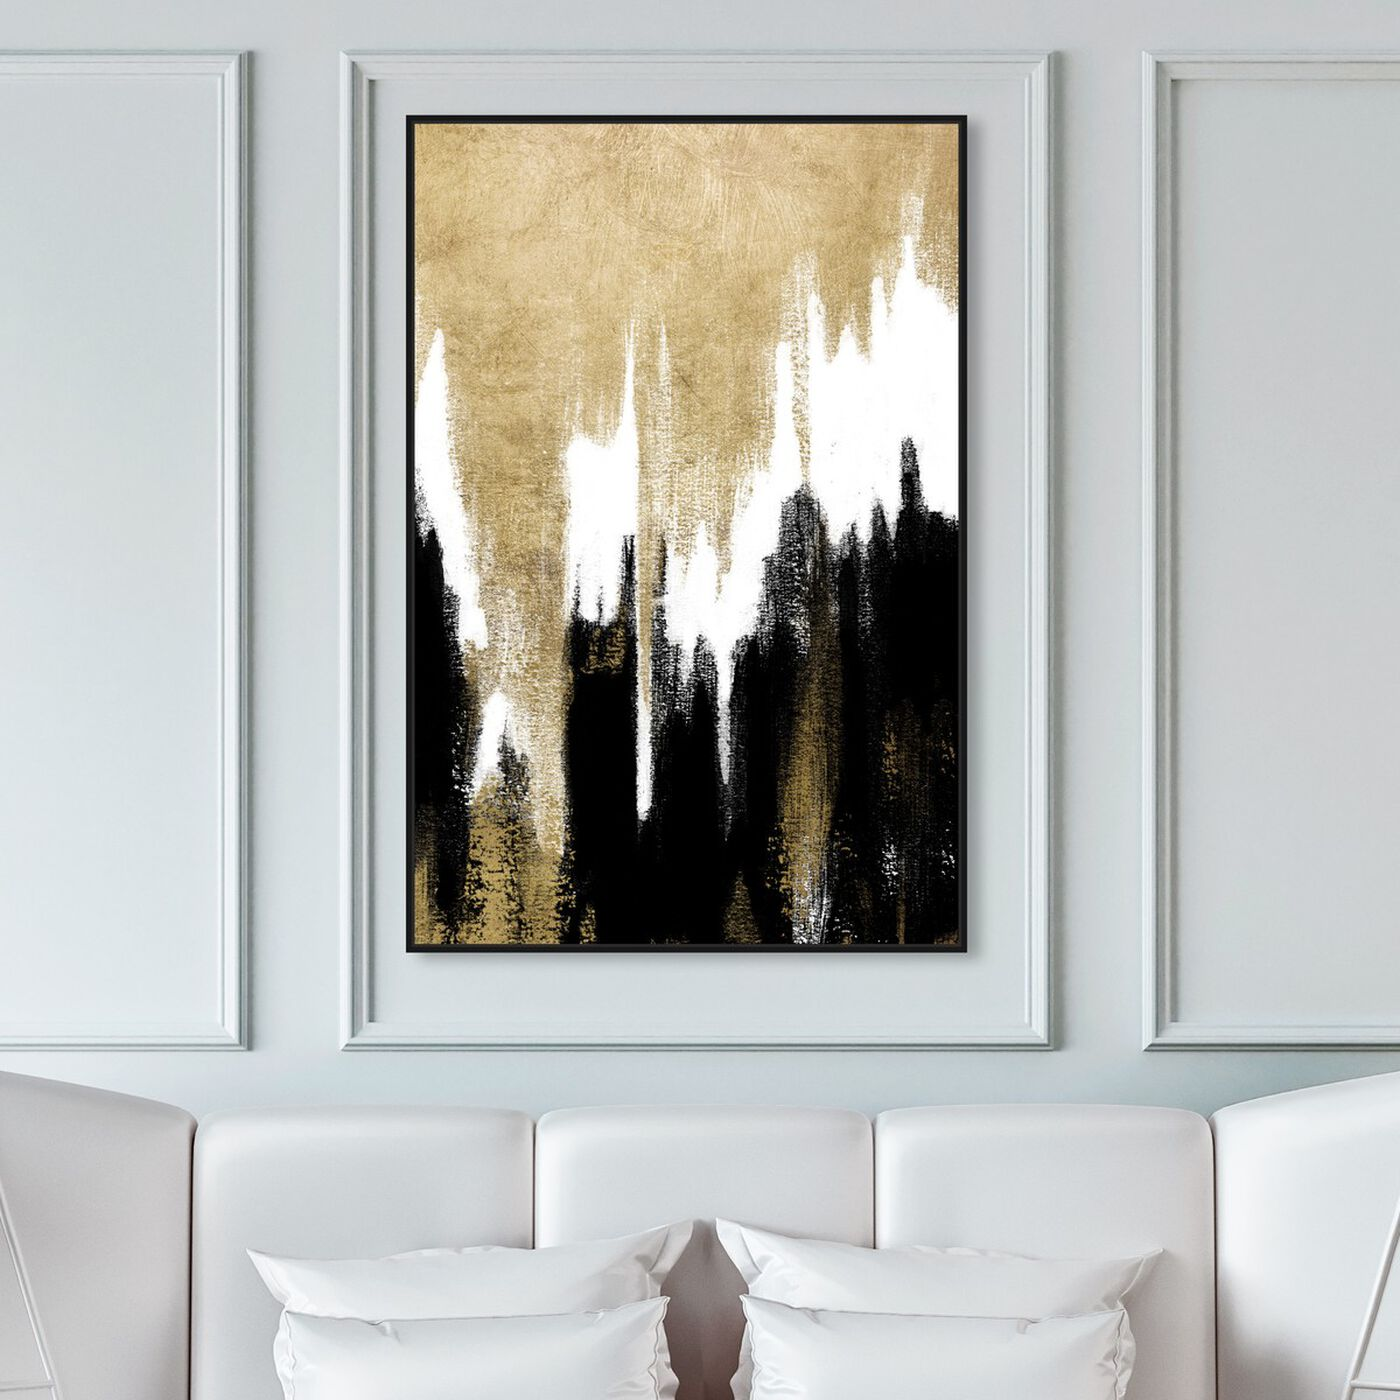 Hanging view of Adore Adore featuring abstract and paint art.